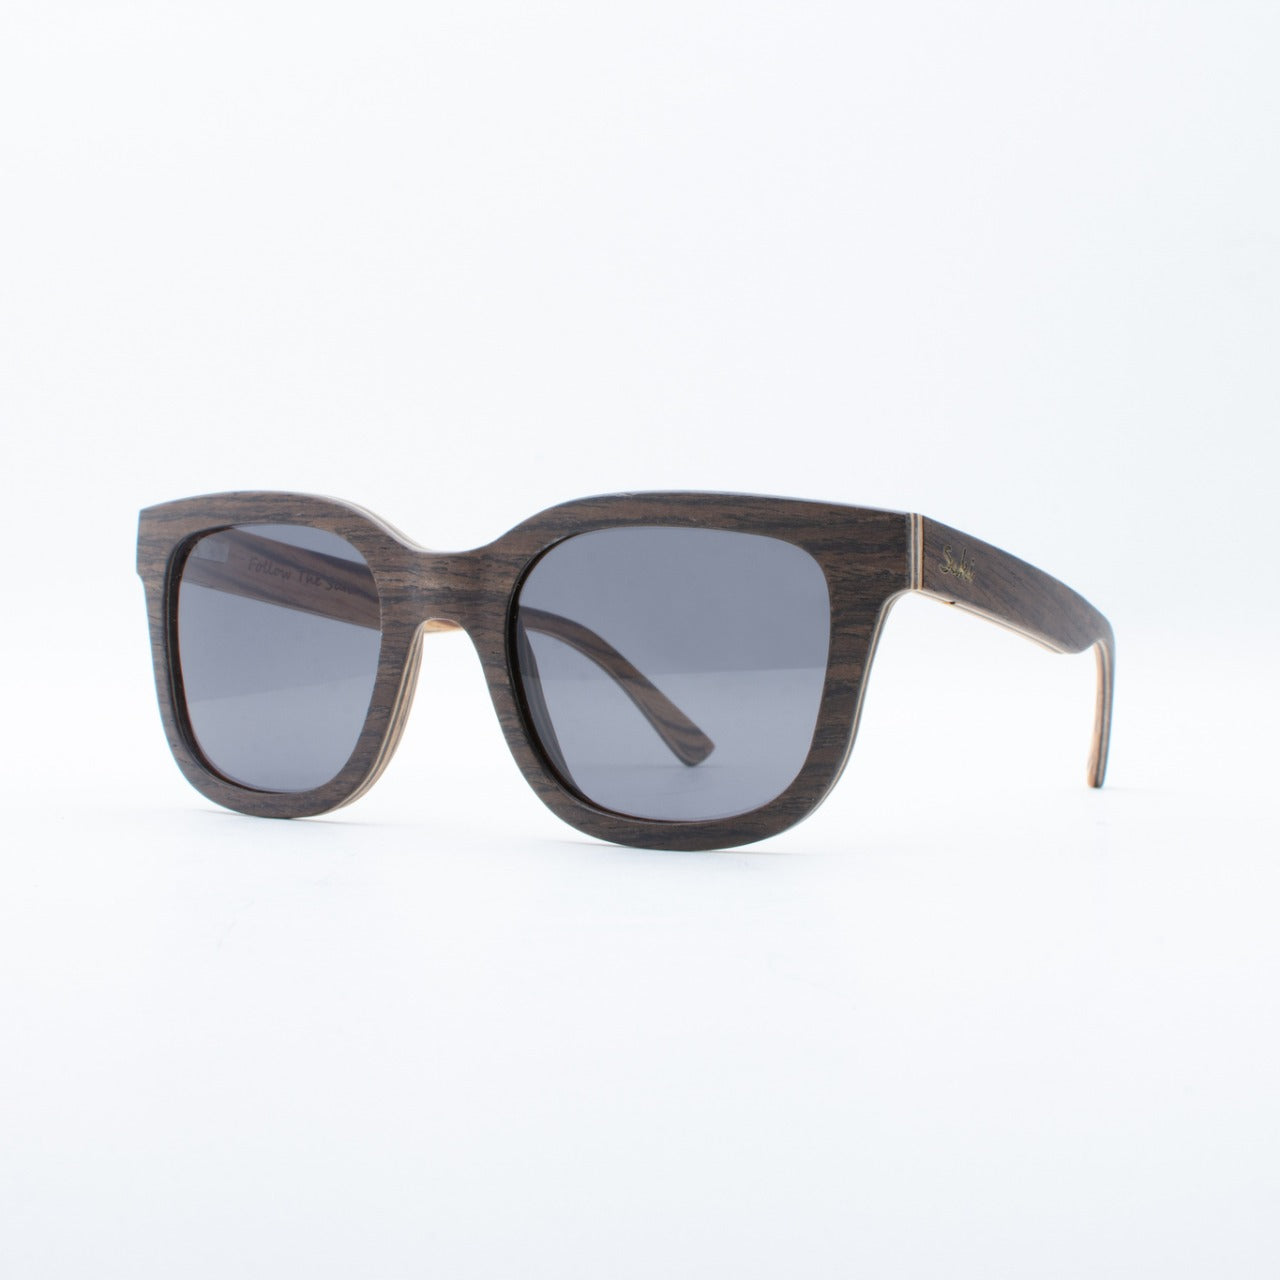 WOODEN SUNGLASSES SENTANI EBONY SUKI